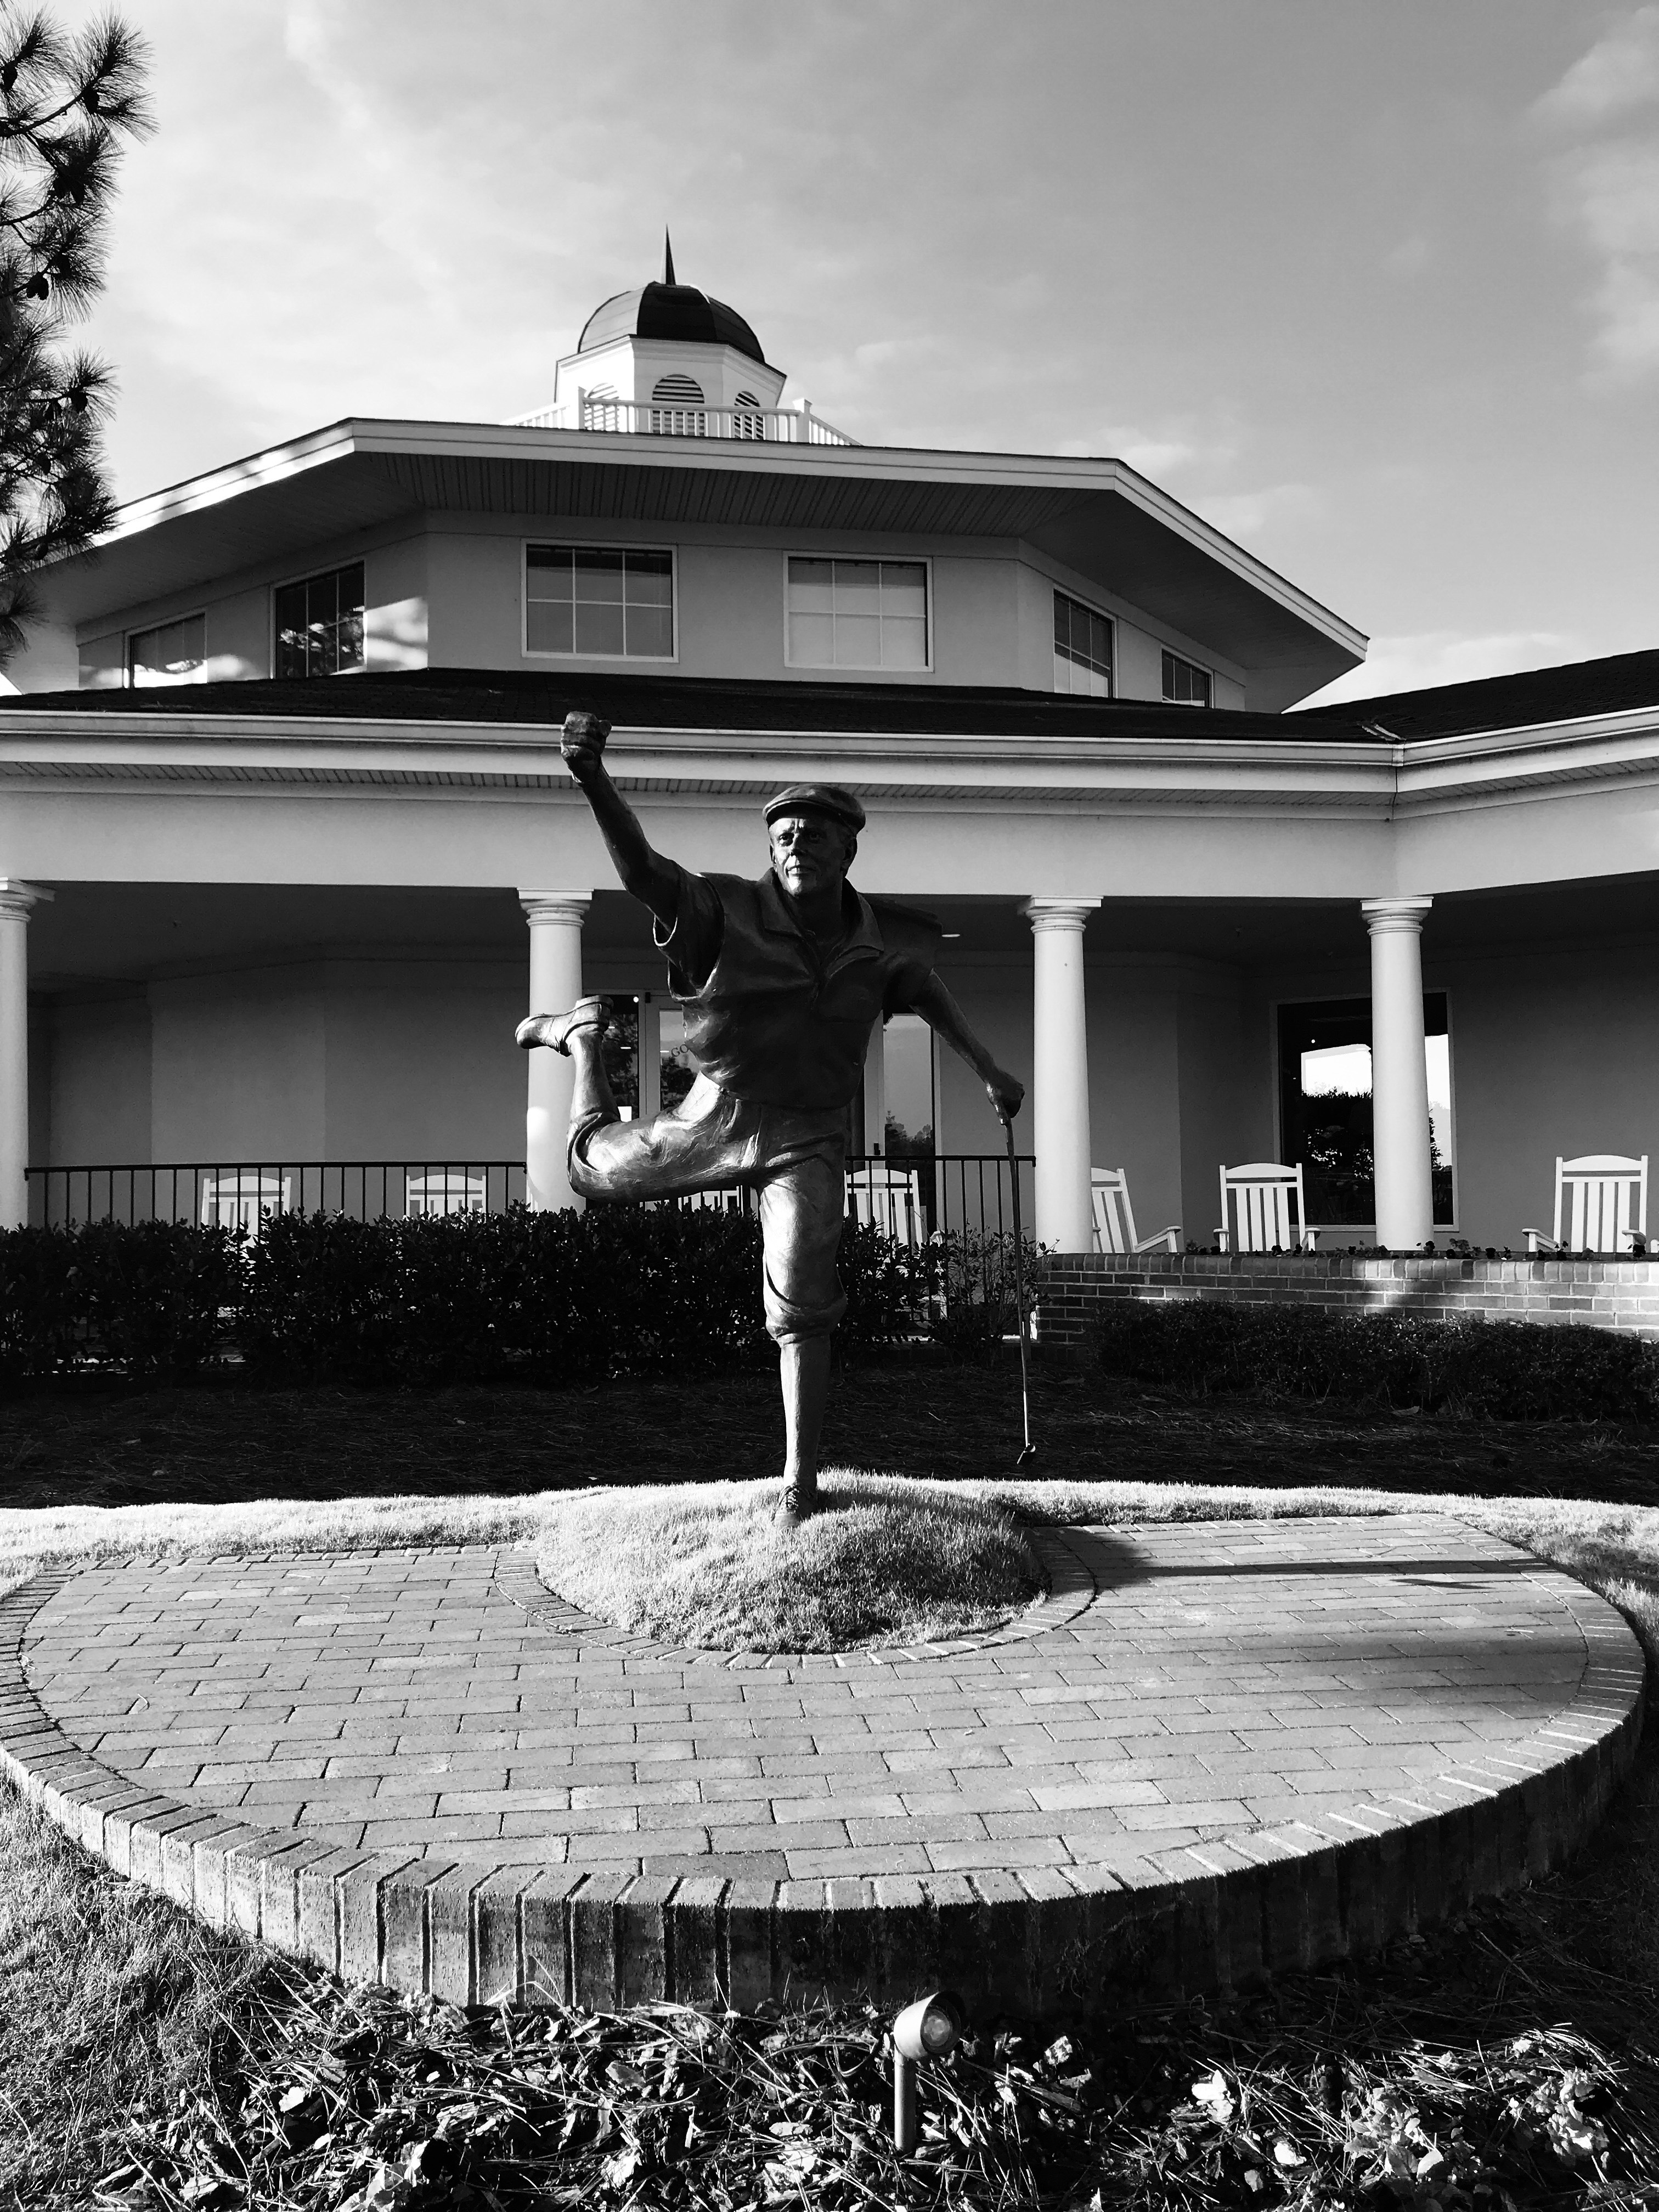 A tribute to the great Payne Stewart